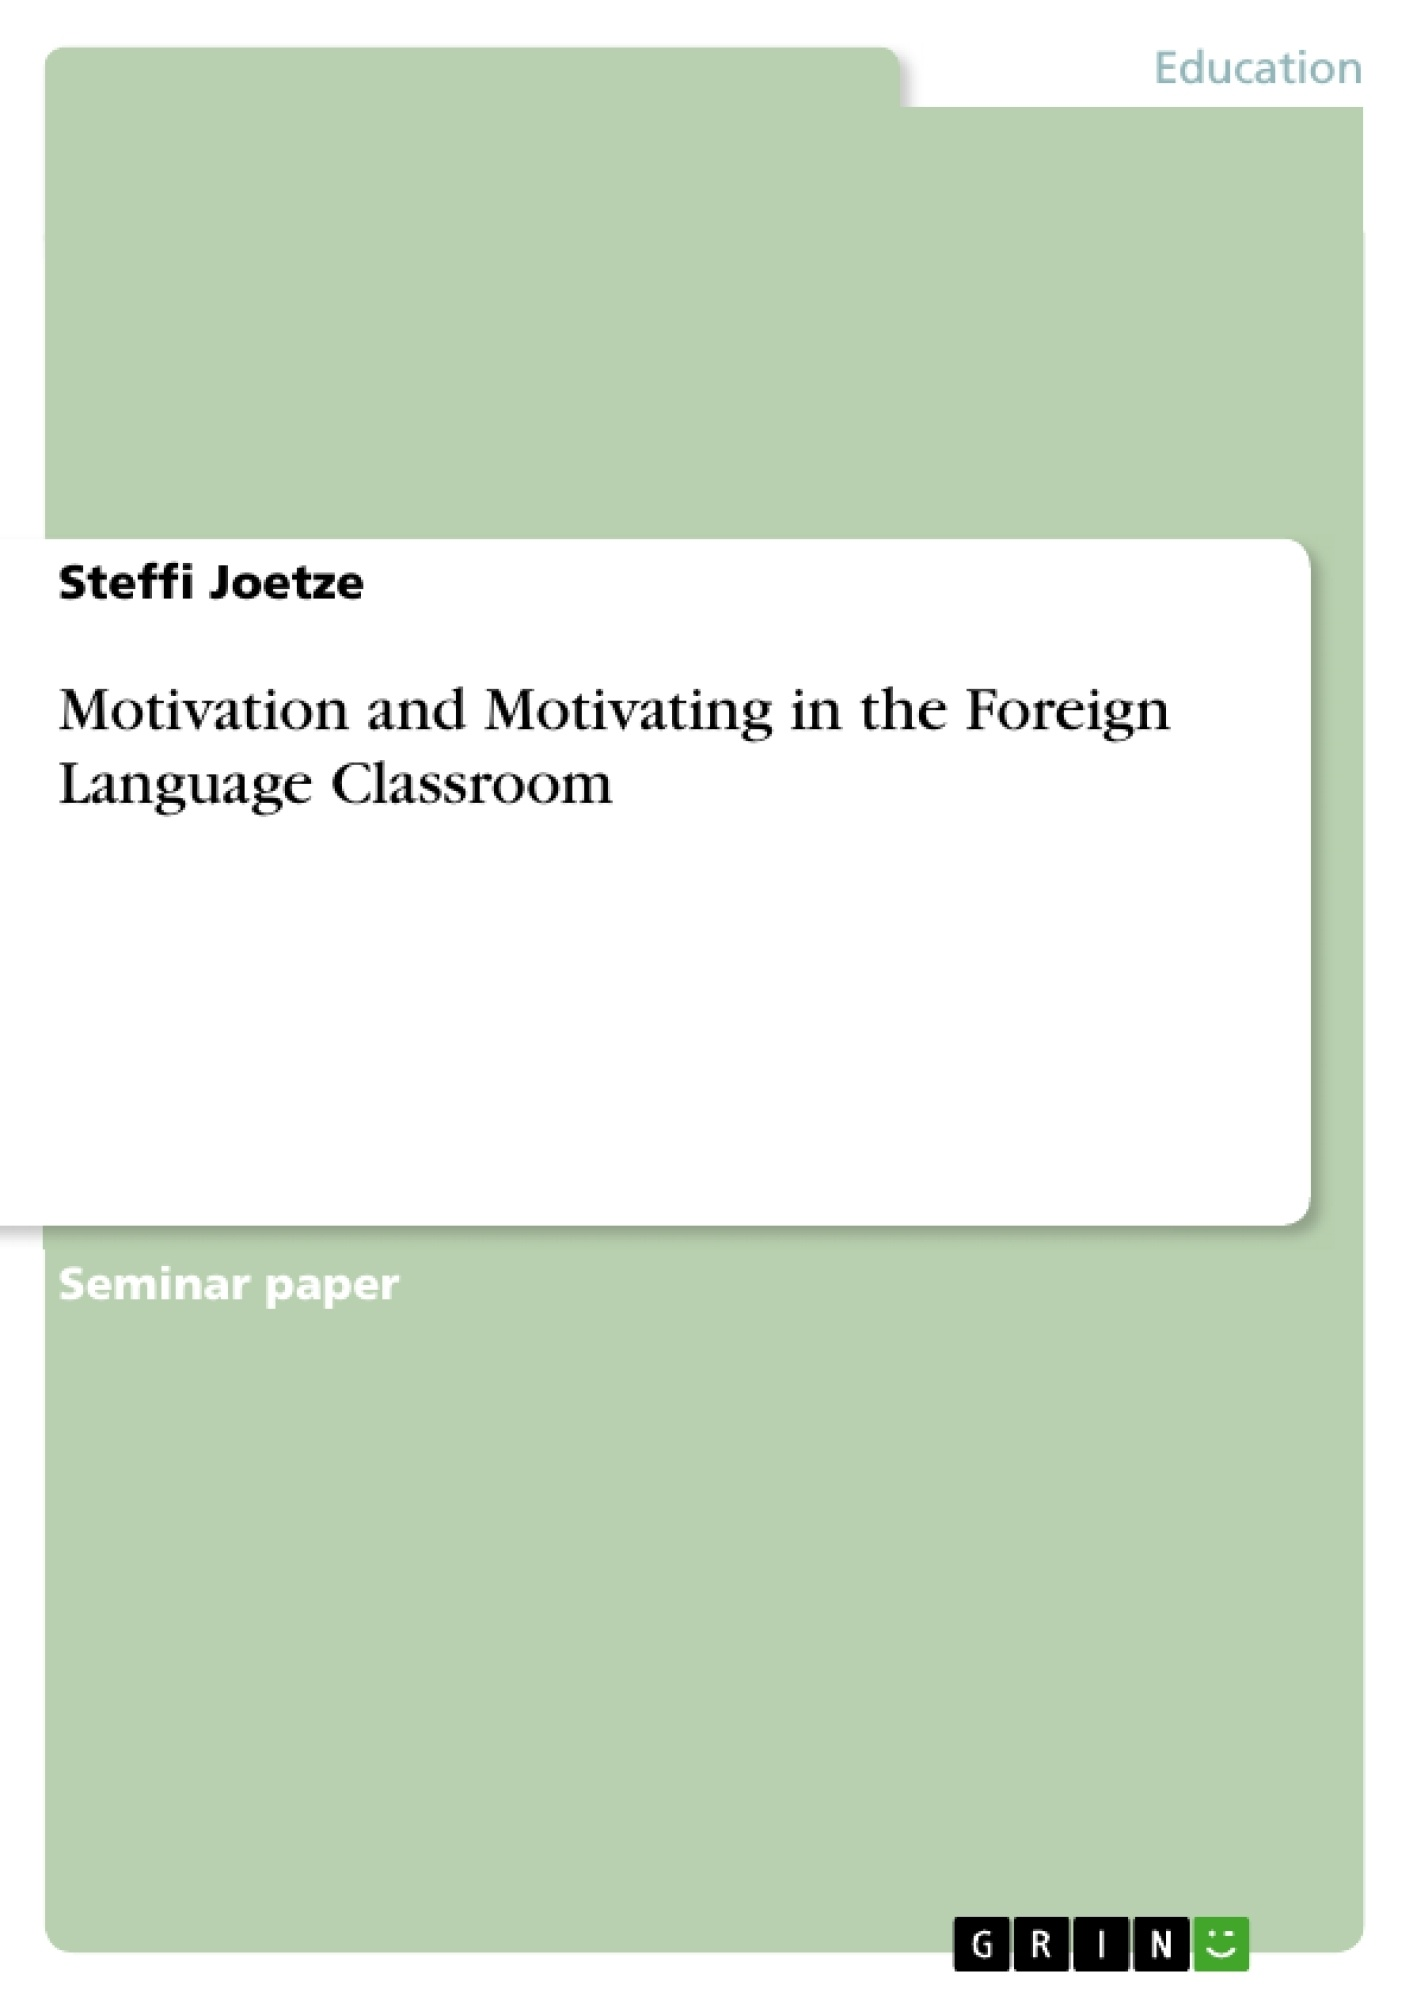 Title: Motivation and Motivating in the Foreign Language Classroom